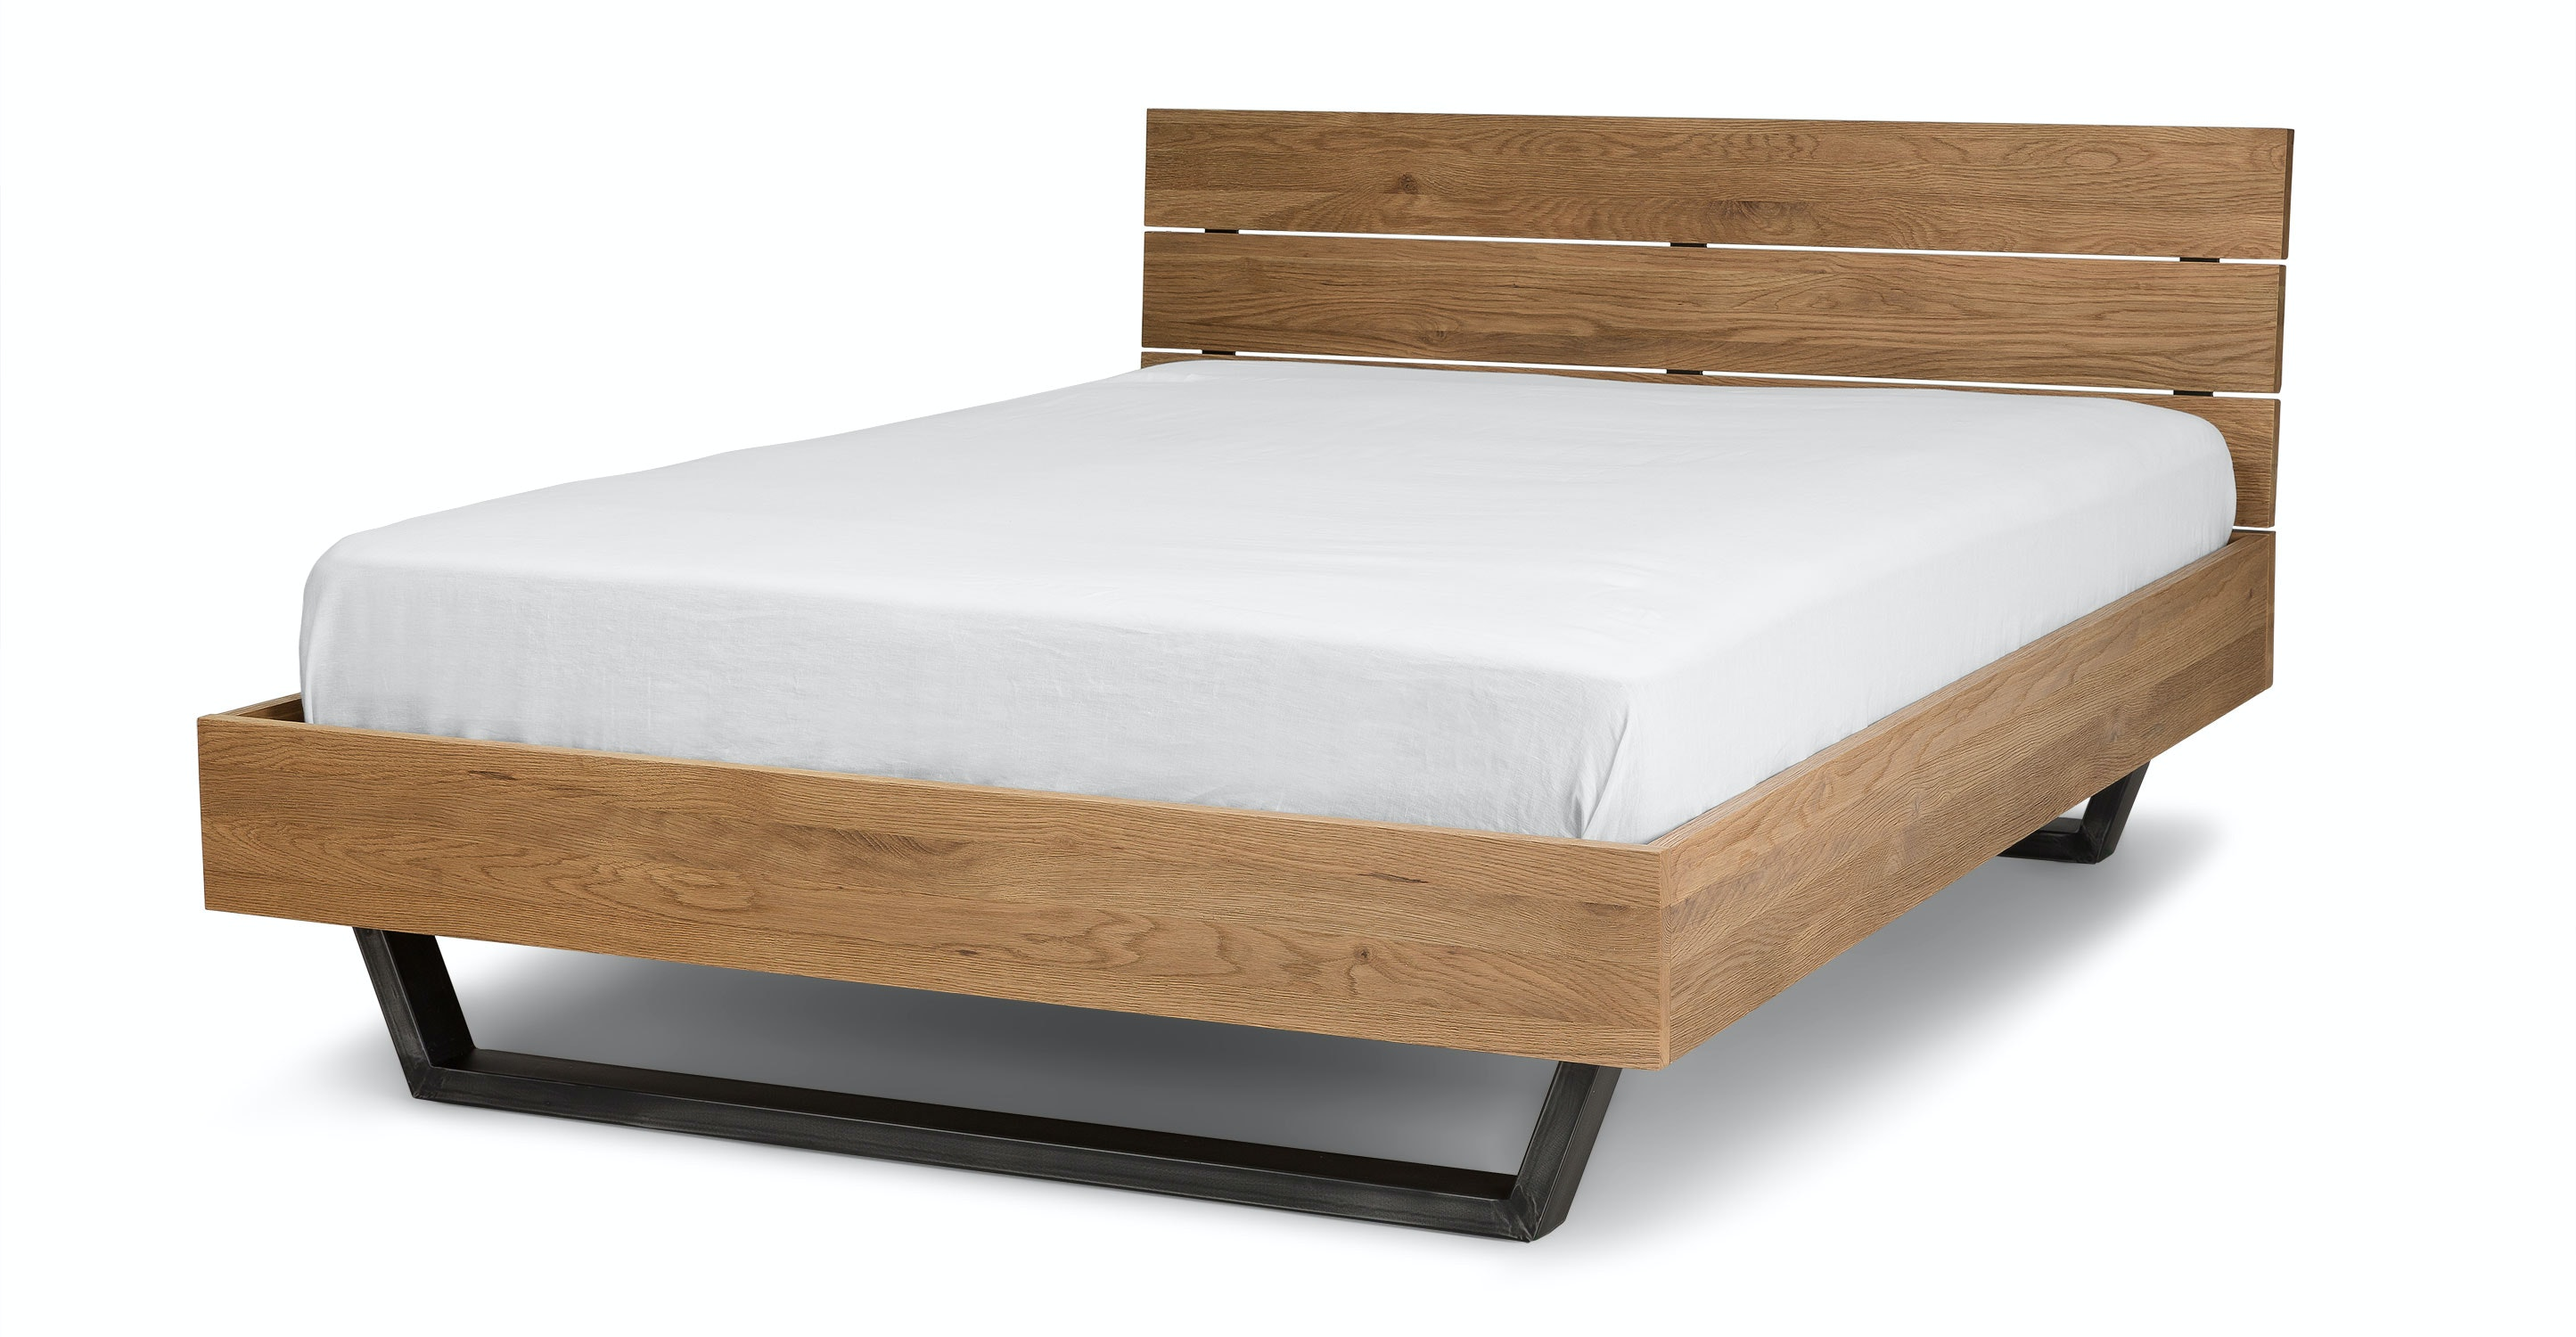 Taiga Oak Full Bed - Beds - Article | Modern, Mid-Century and ...